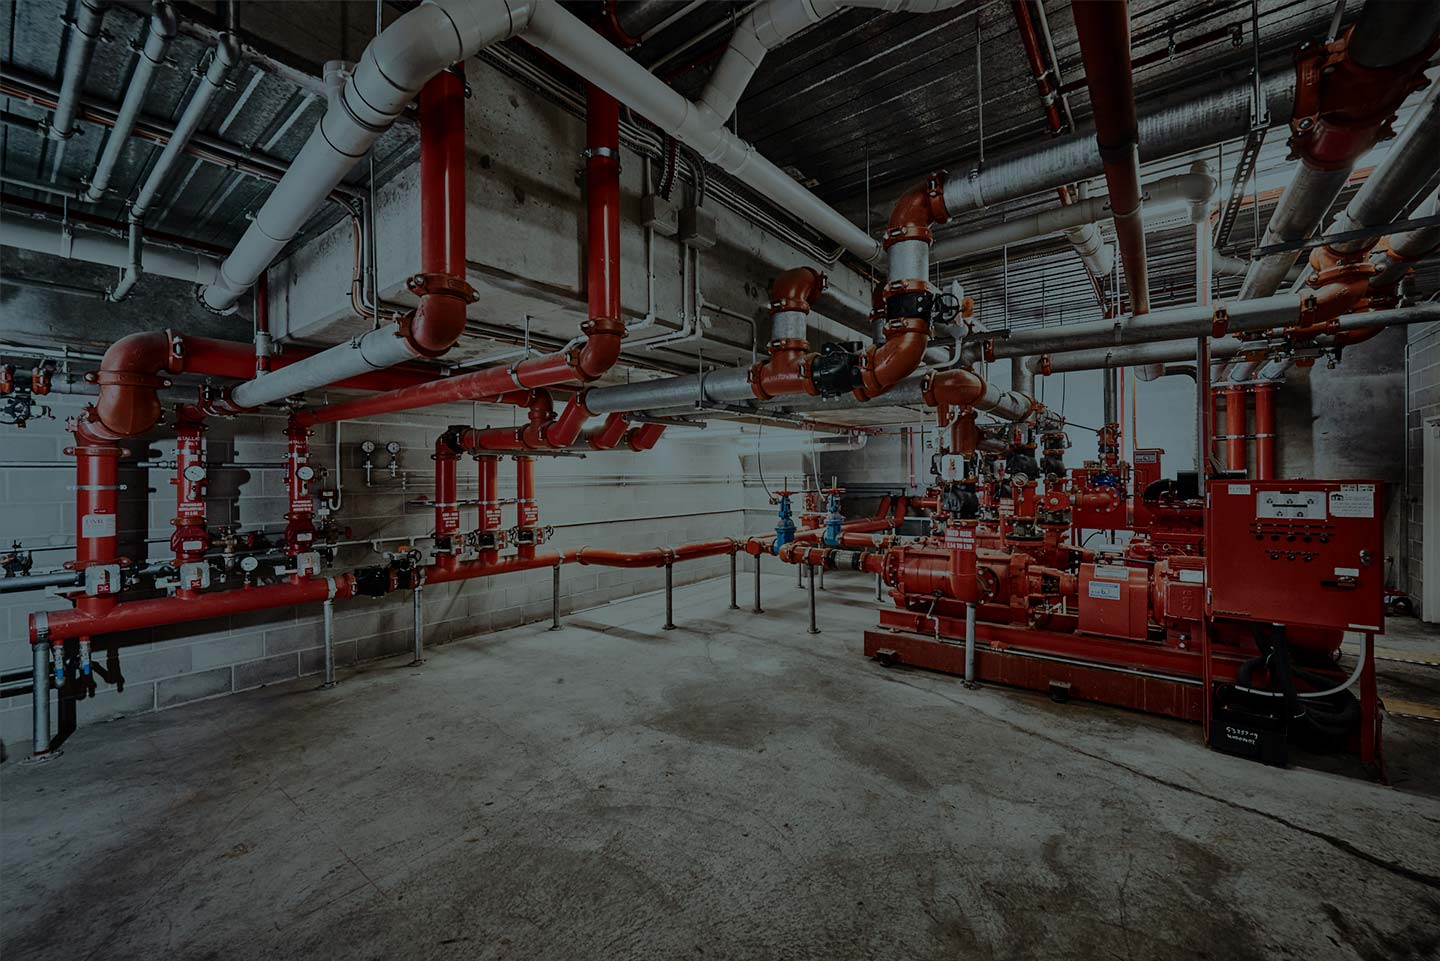 A photo of a sprinkler system control bay under a building.